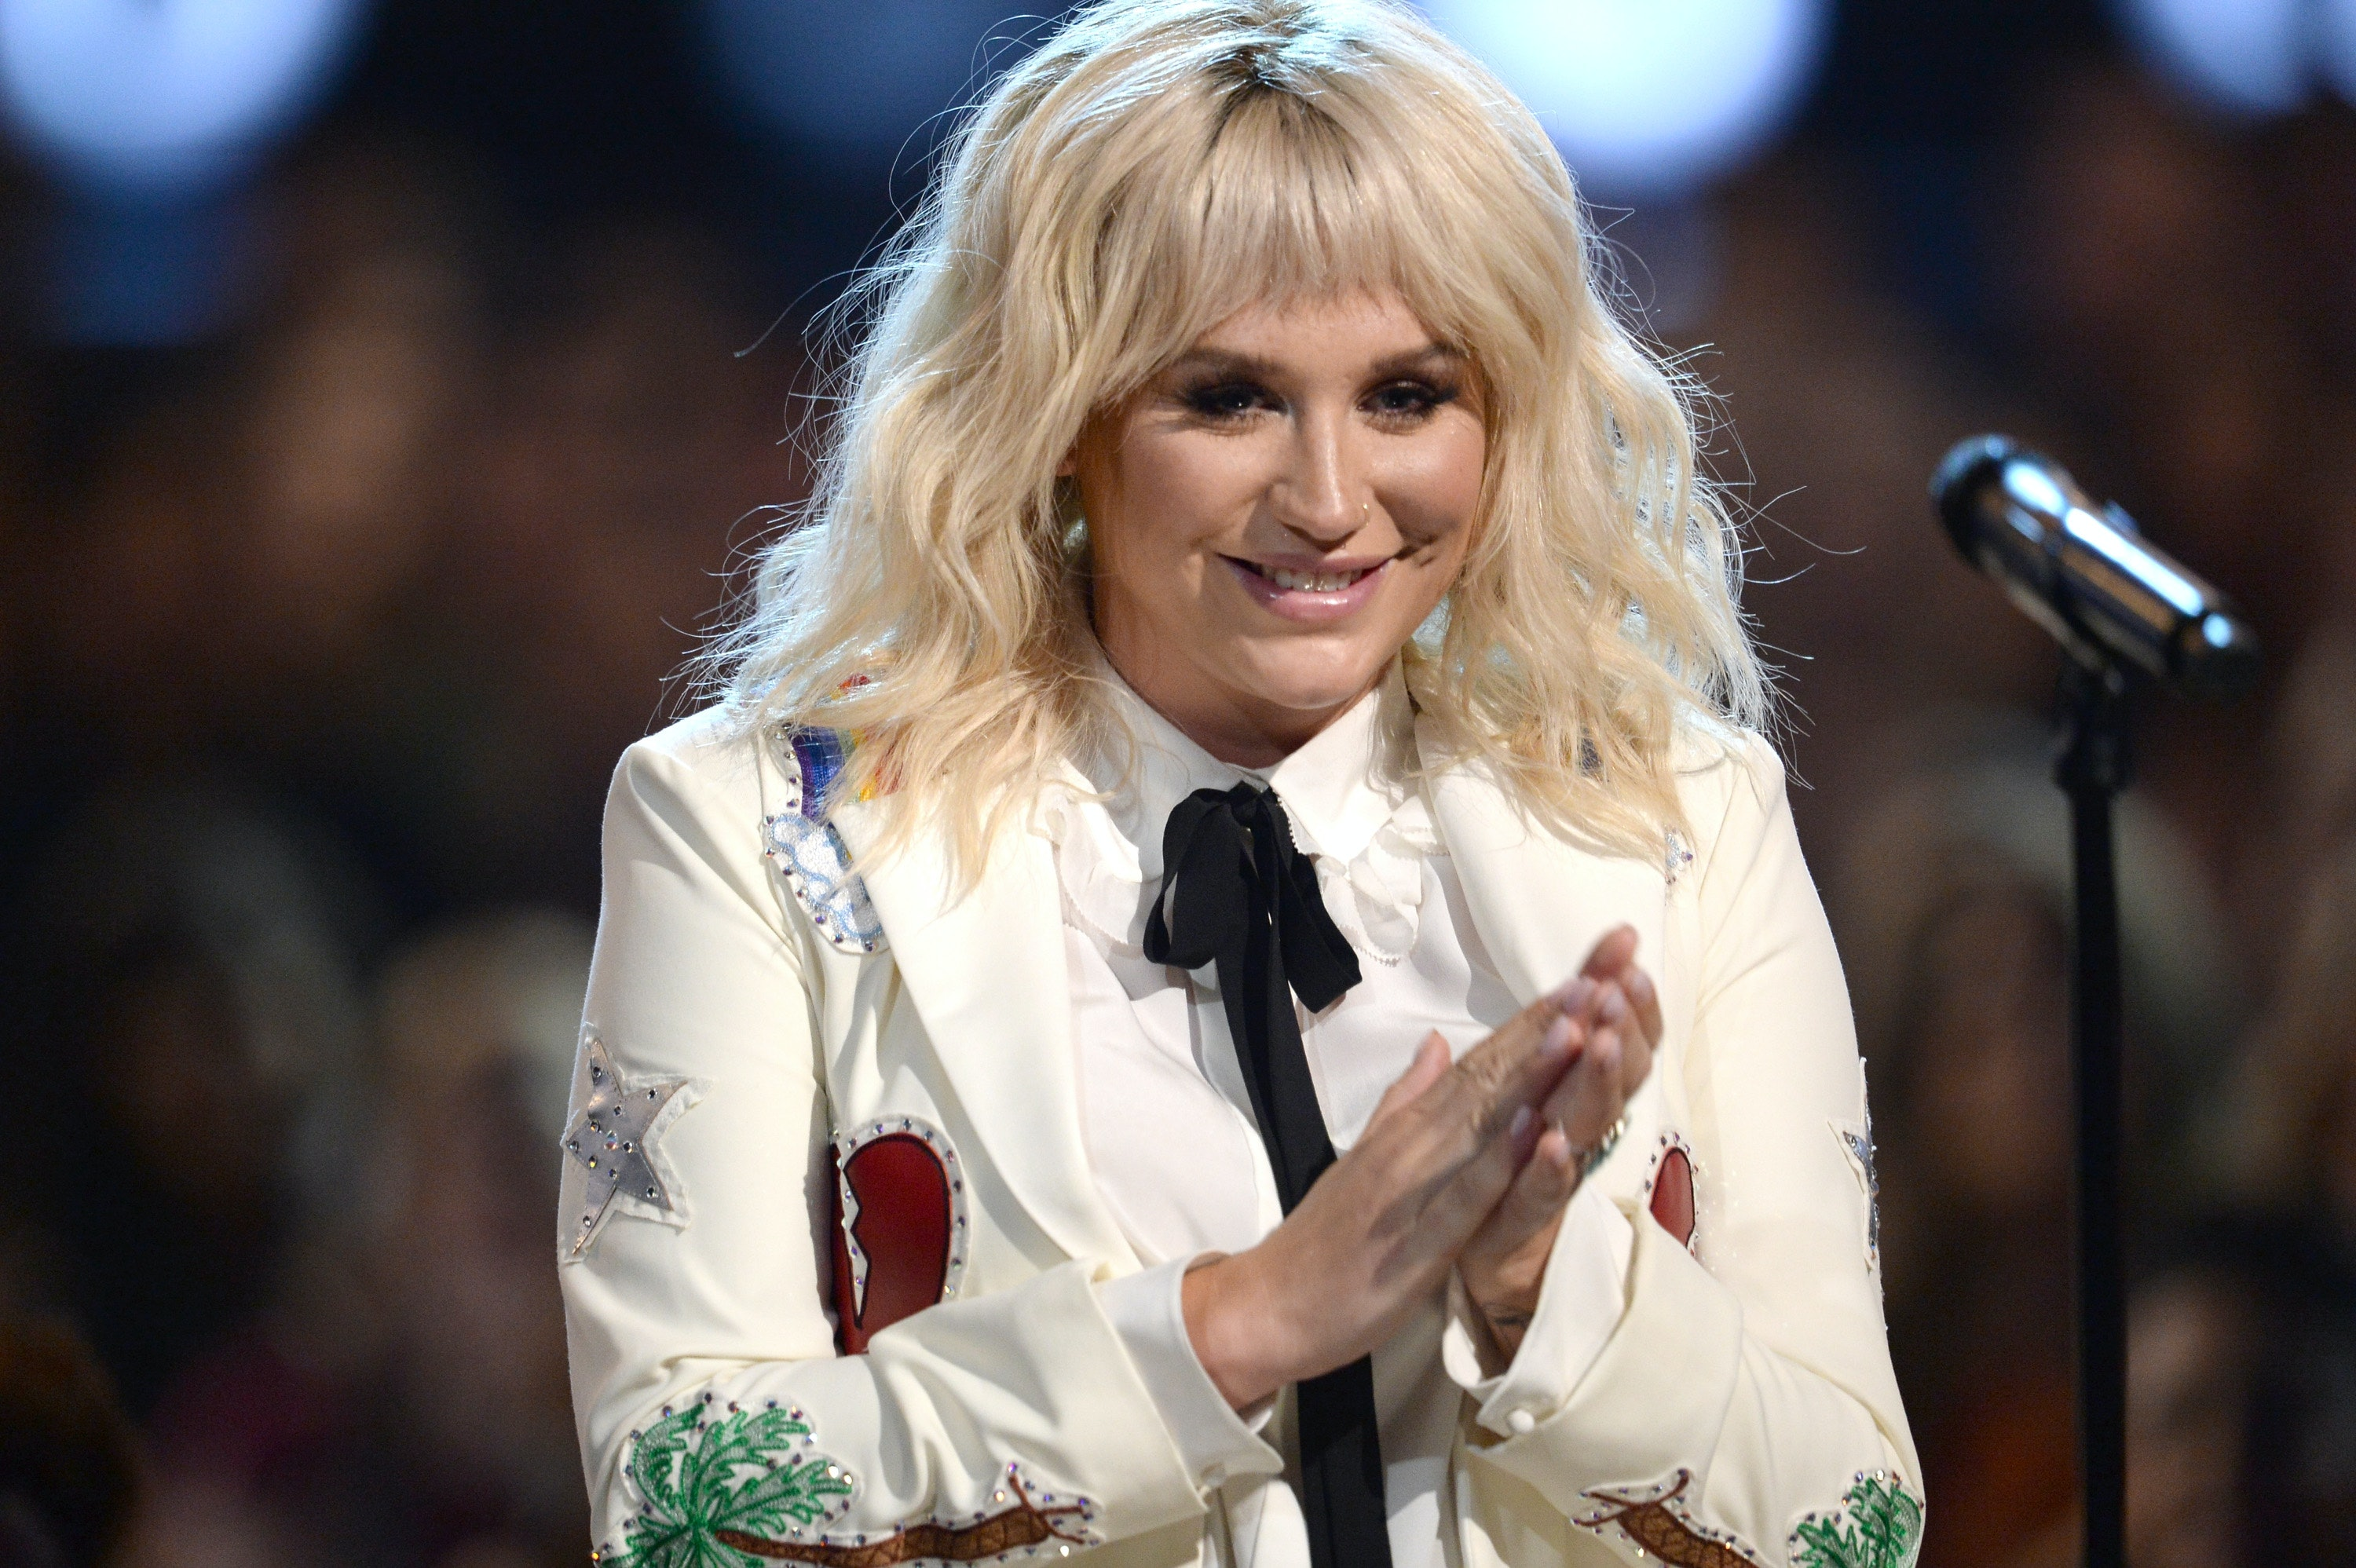 Dr. Luke trying to add defamation claim to Kesha lawsuit